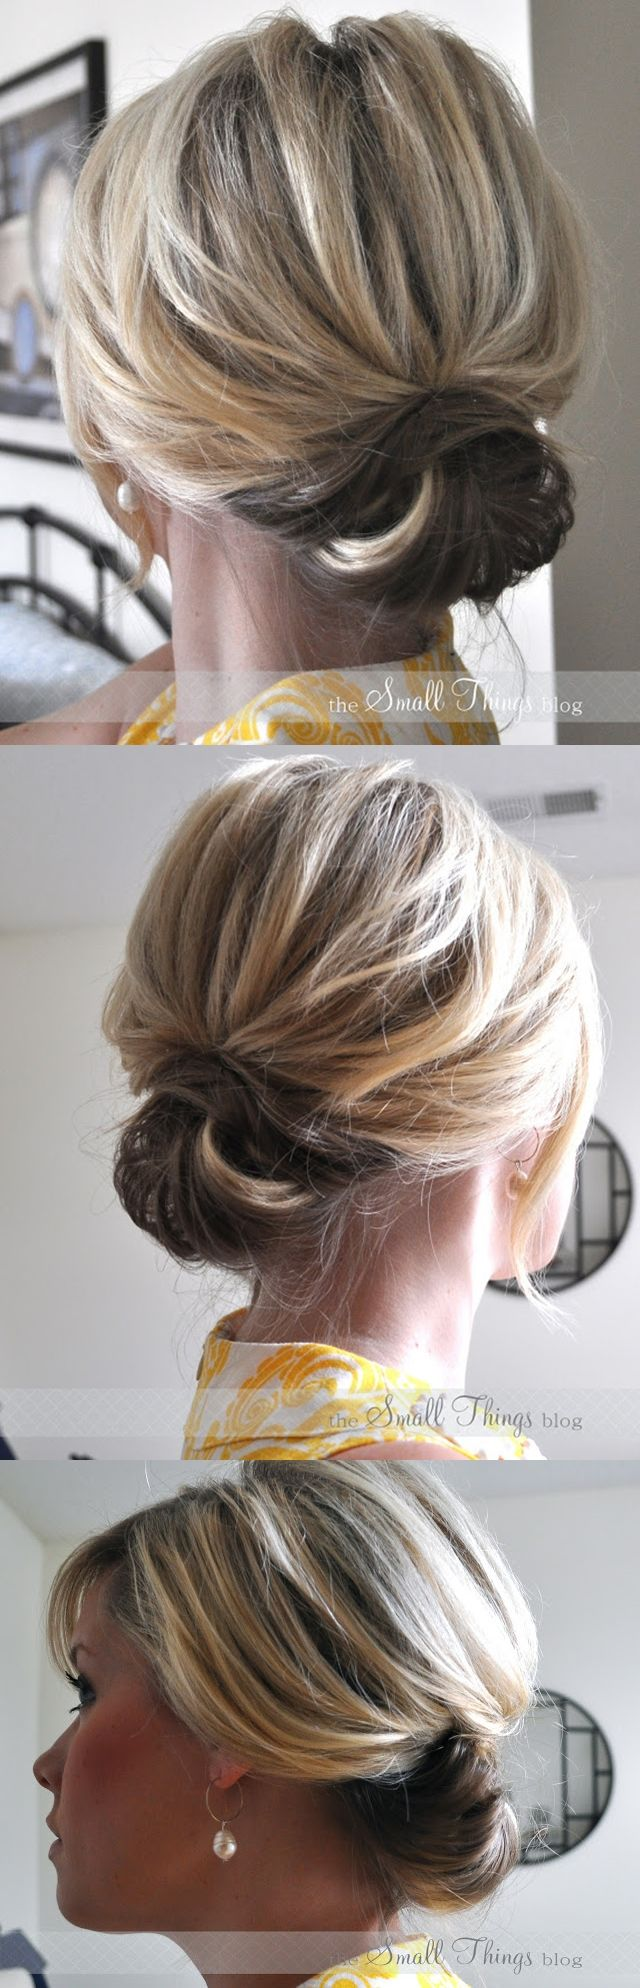 updo styles for short hair the chic updo diy hairstyles hair 4527 | c760849f7281023e8557810234882519 short hair half up wedding updos for shorter hair